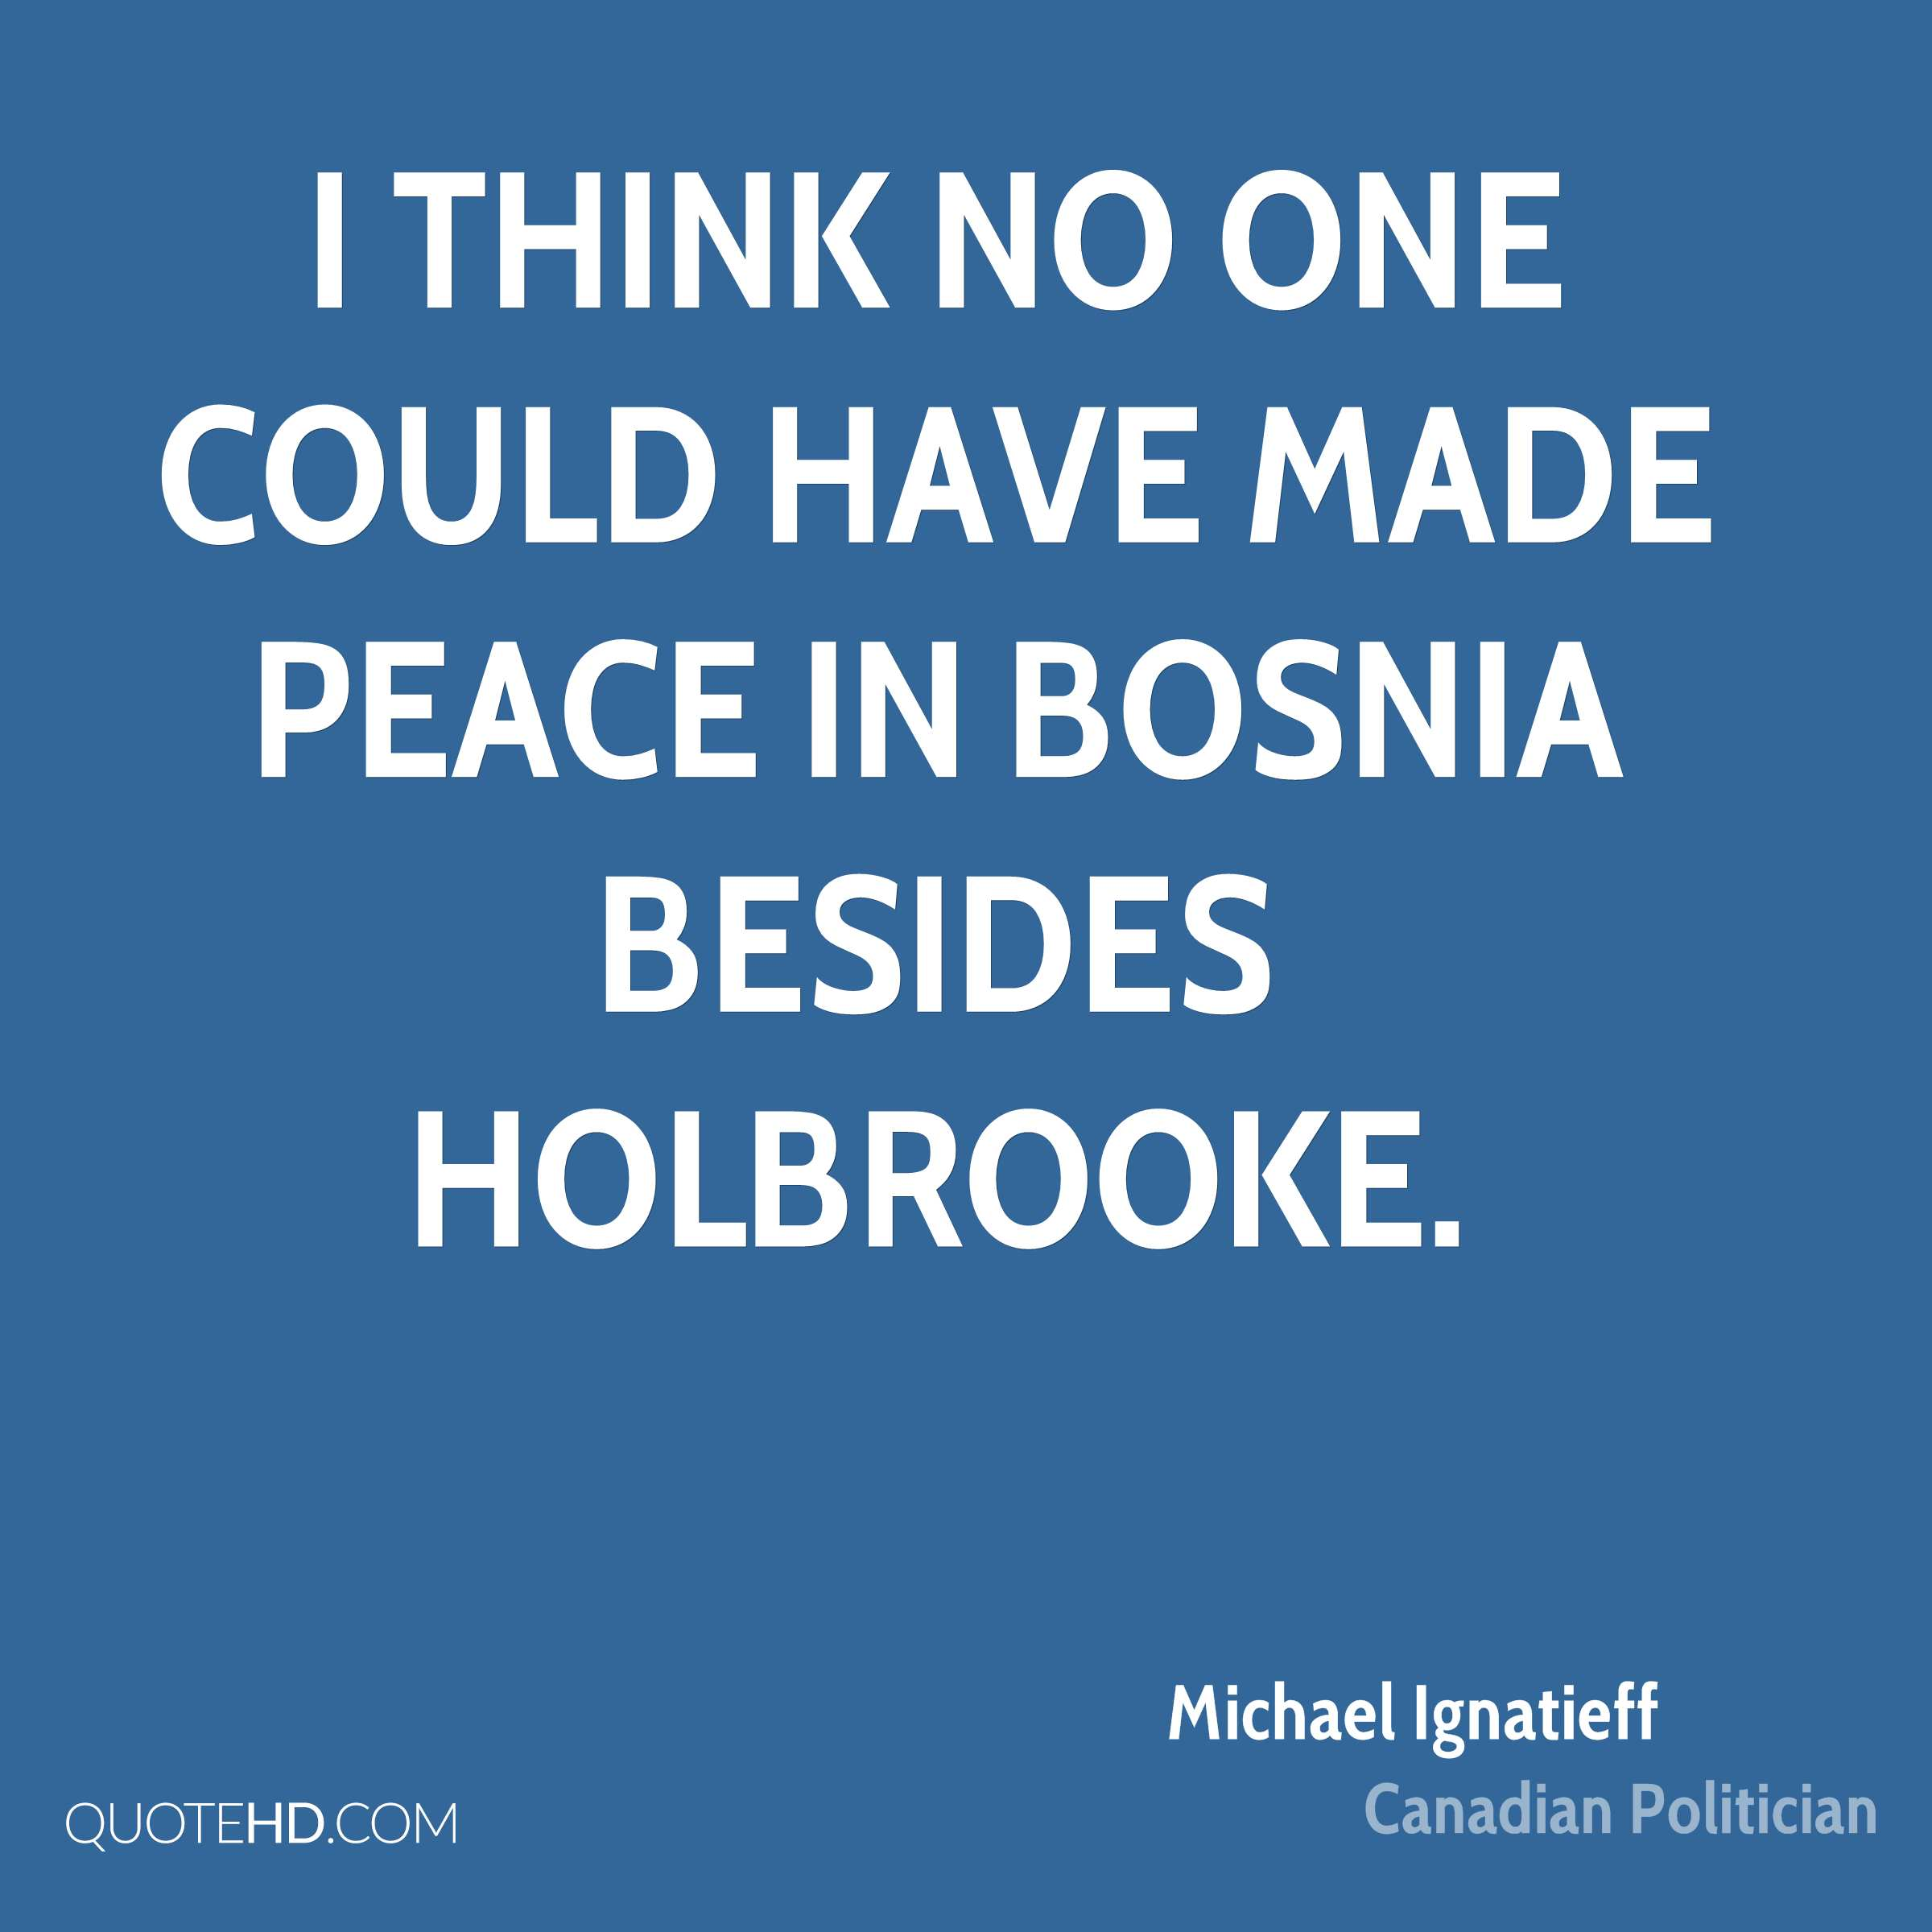 I think no one could have made peace in Bosnia besides Holbrooke.